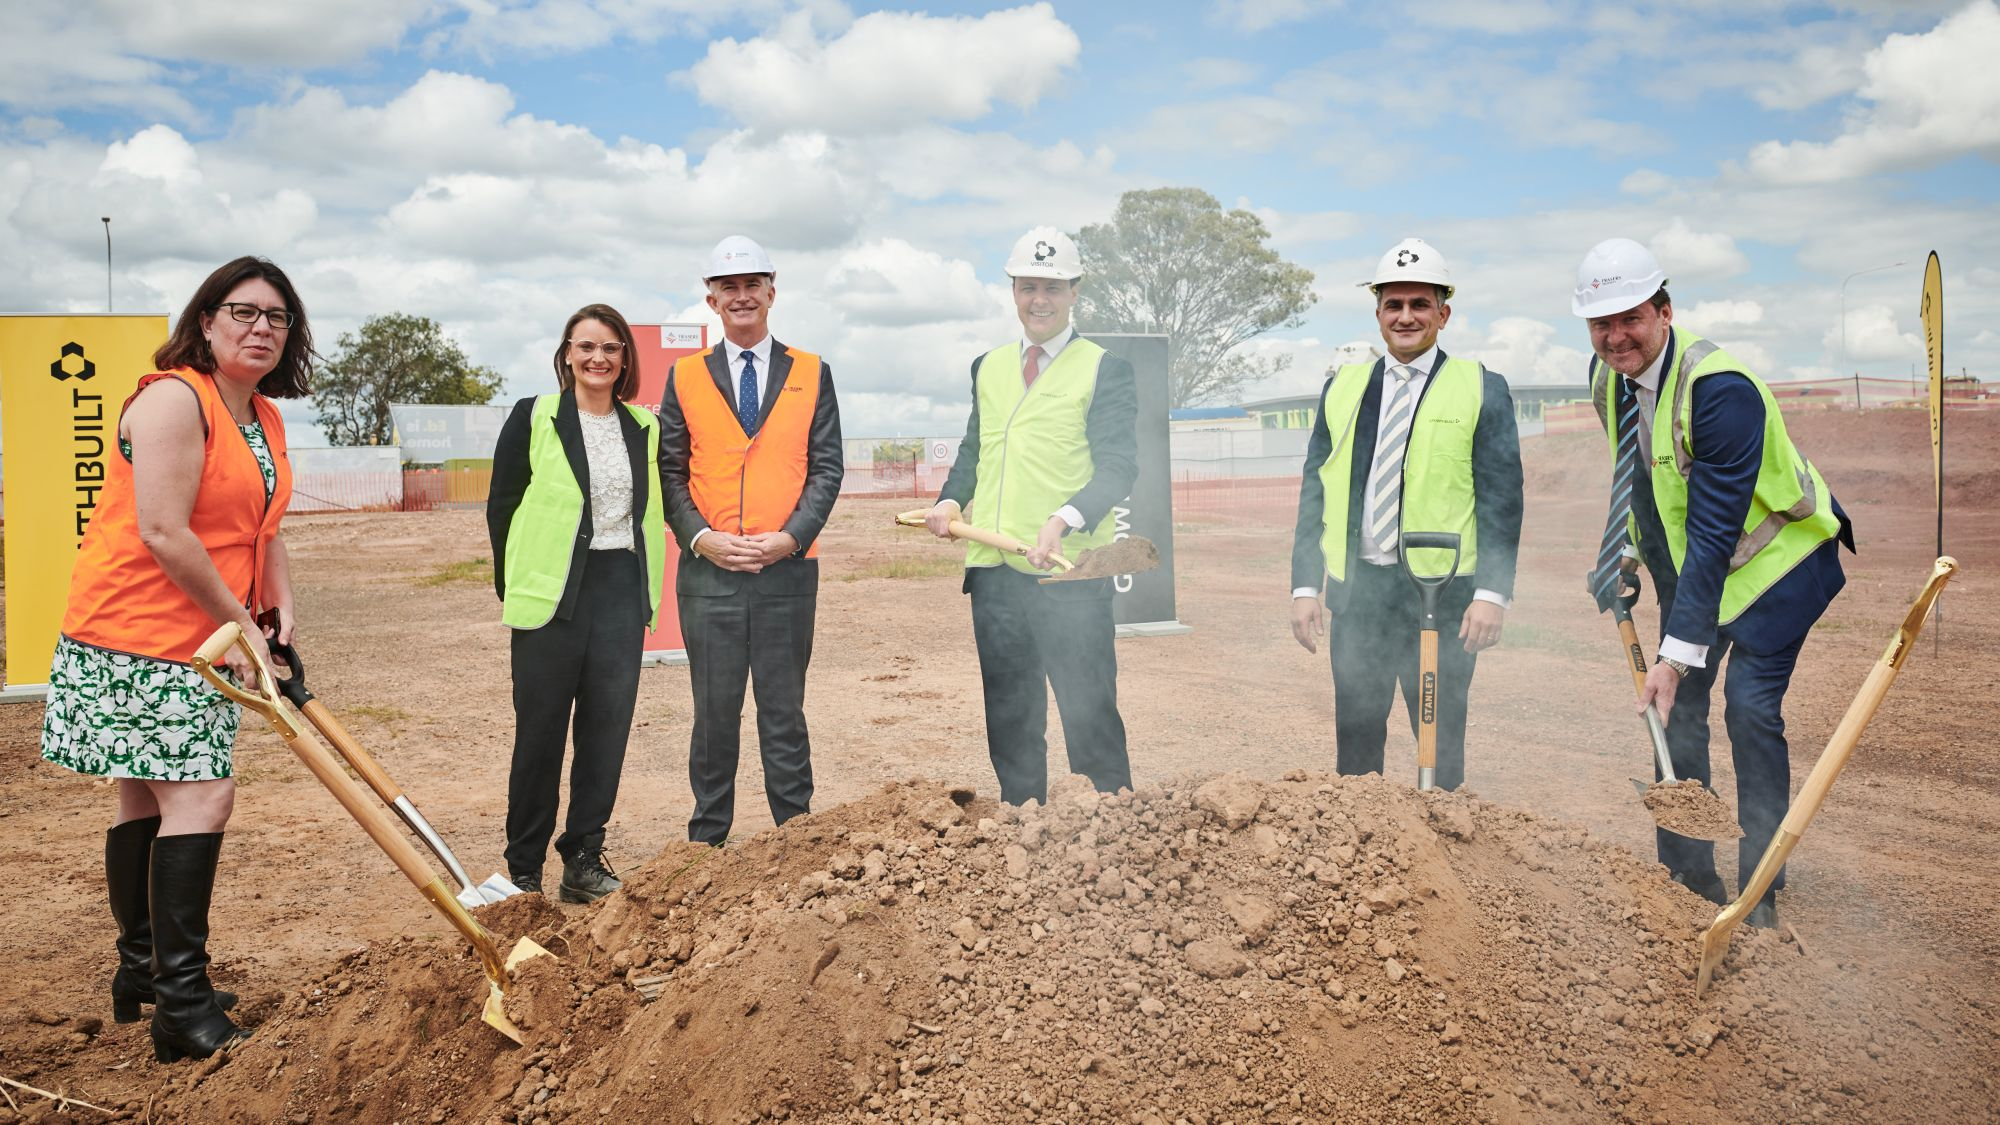 Ed.Square sod turning, 1 October 2019, Edmondson Park, Frasers Property Australia